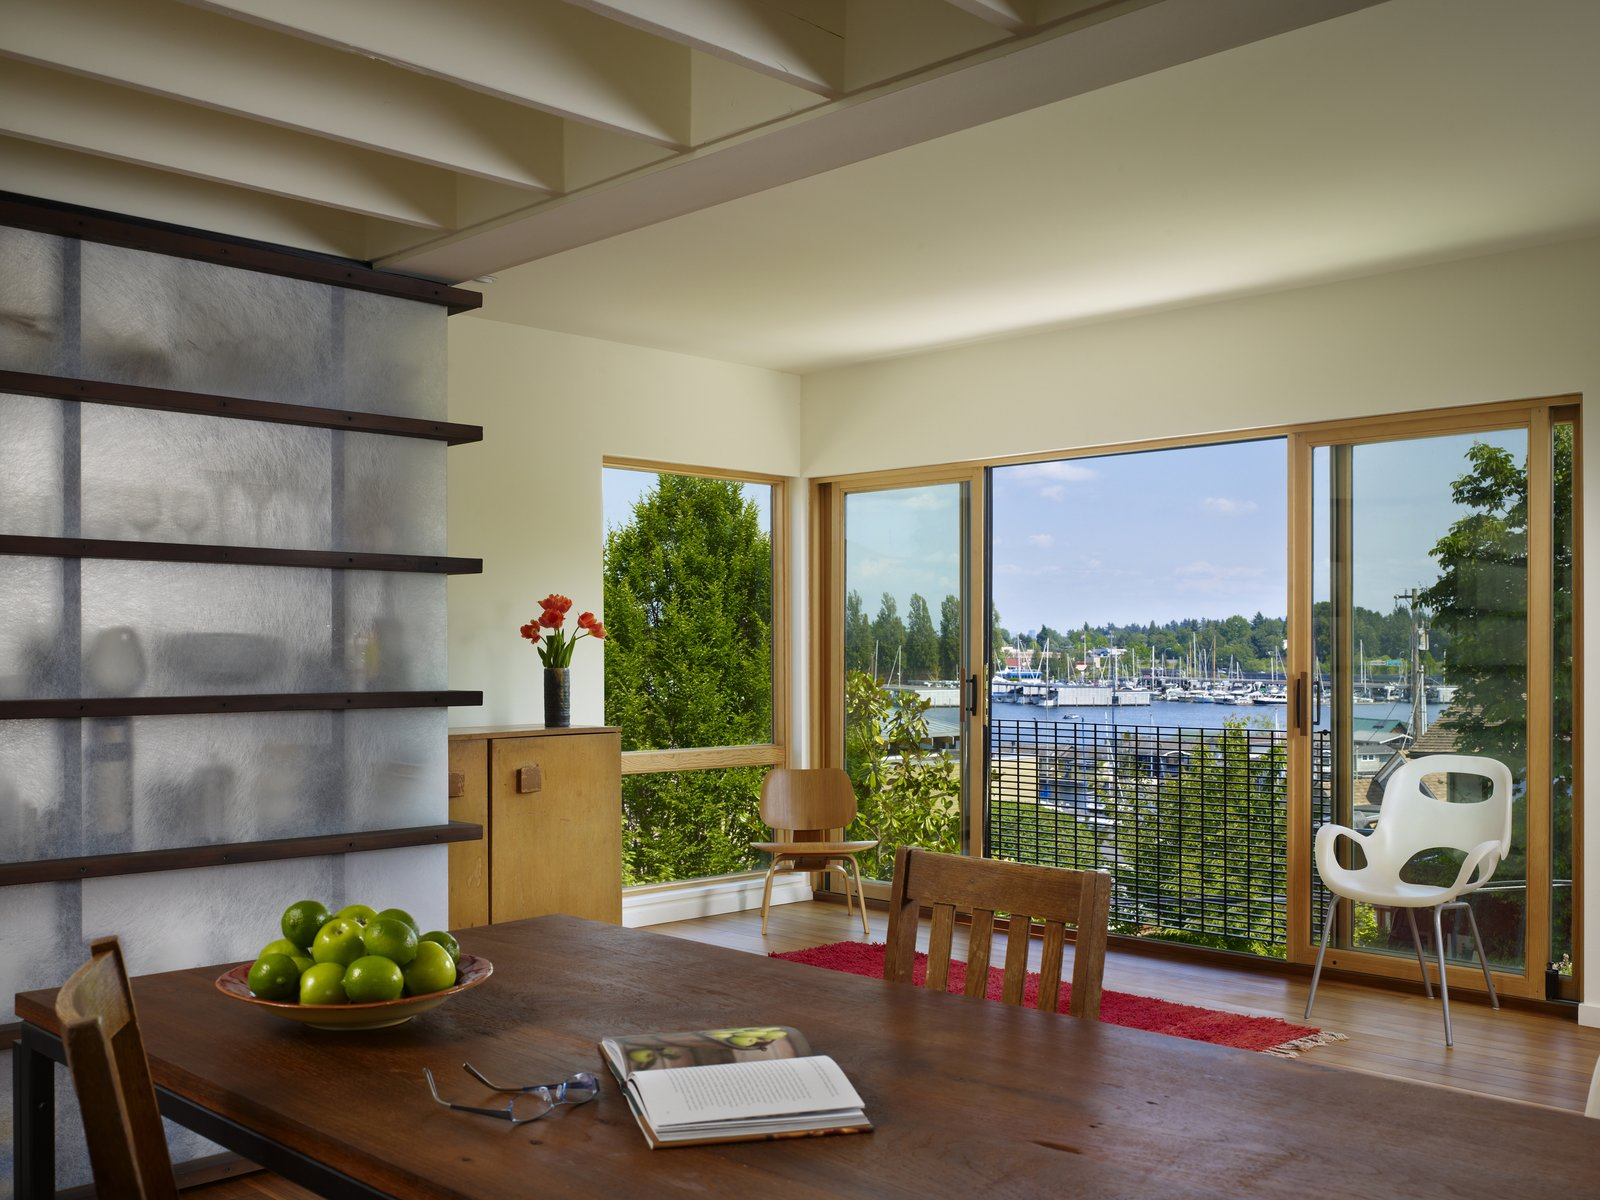 Dining & Living Room  Lobster Boat House by chadbourne + doss architects